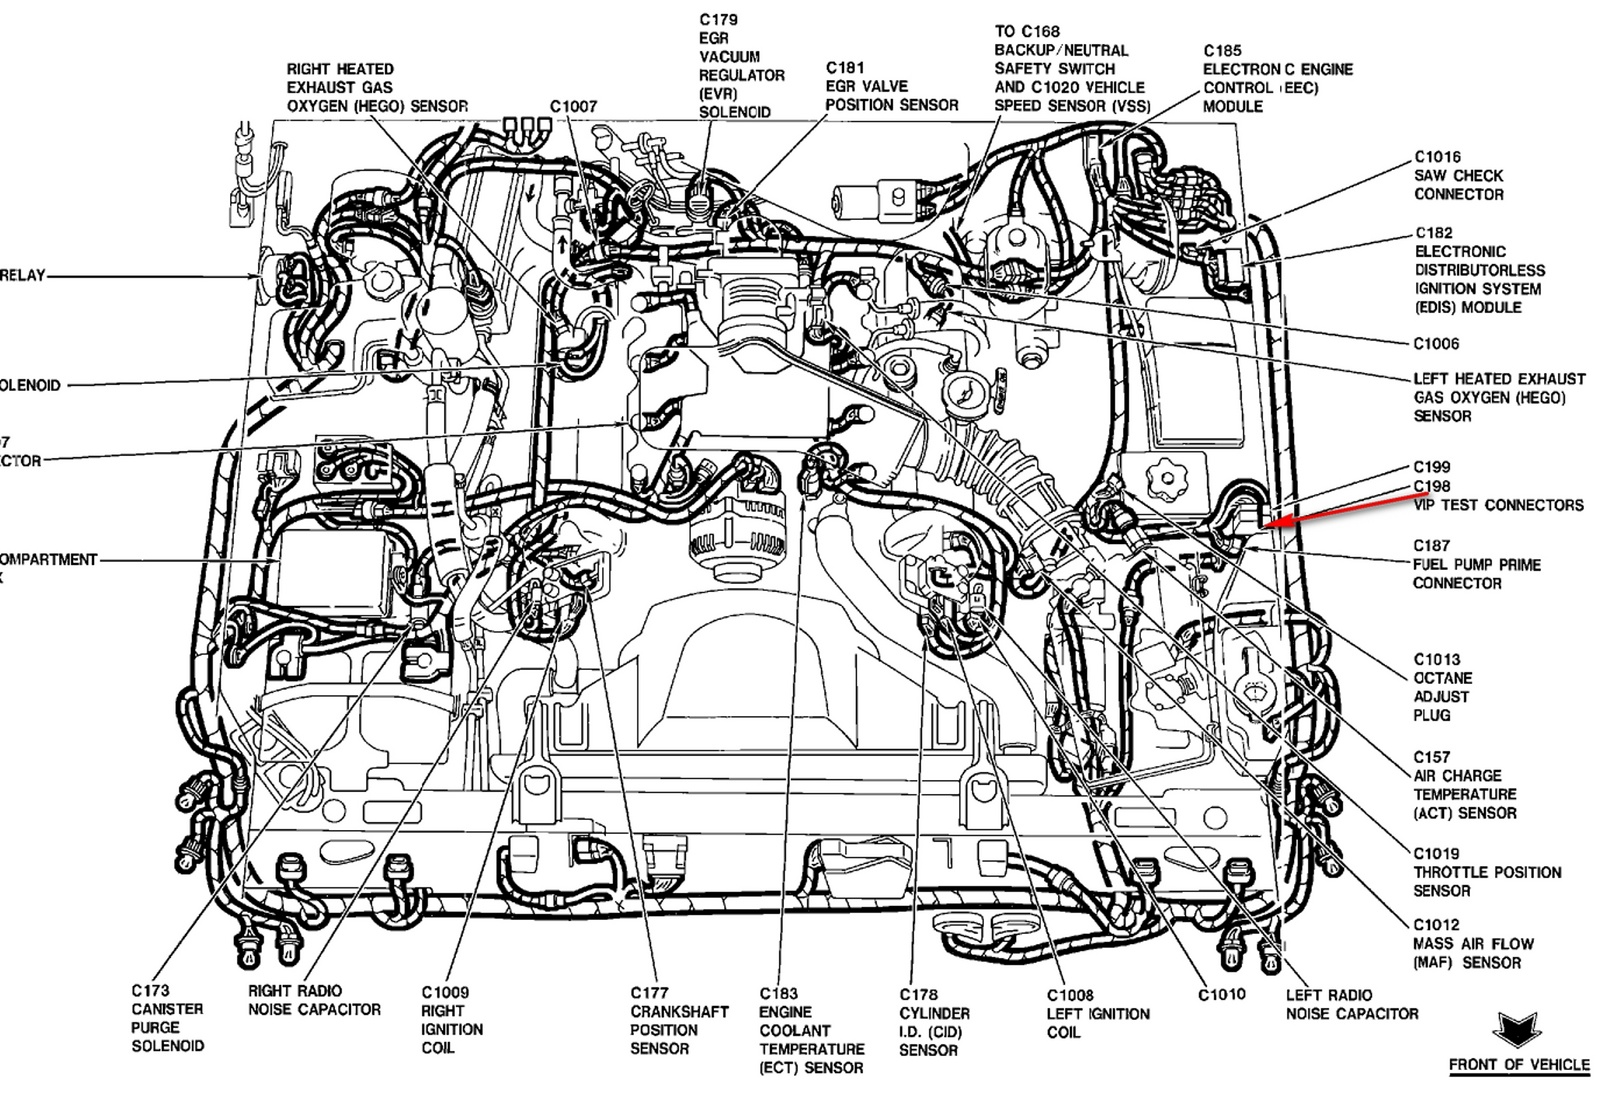 Location Of Canister Purge Valve Solenoid Chevy Hhr on 2005 Chevy Trailblazer Cruisecontrol